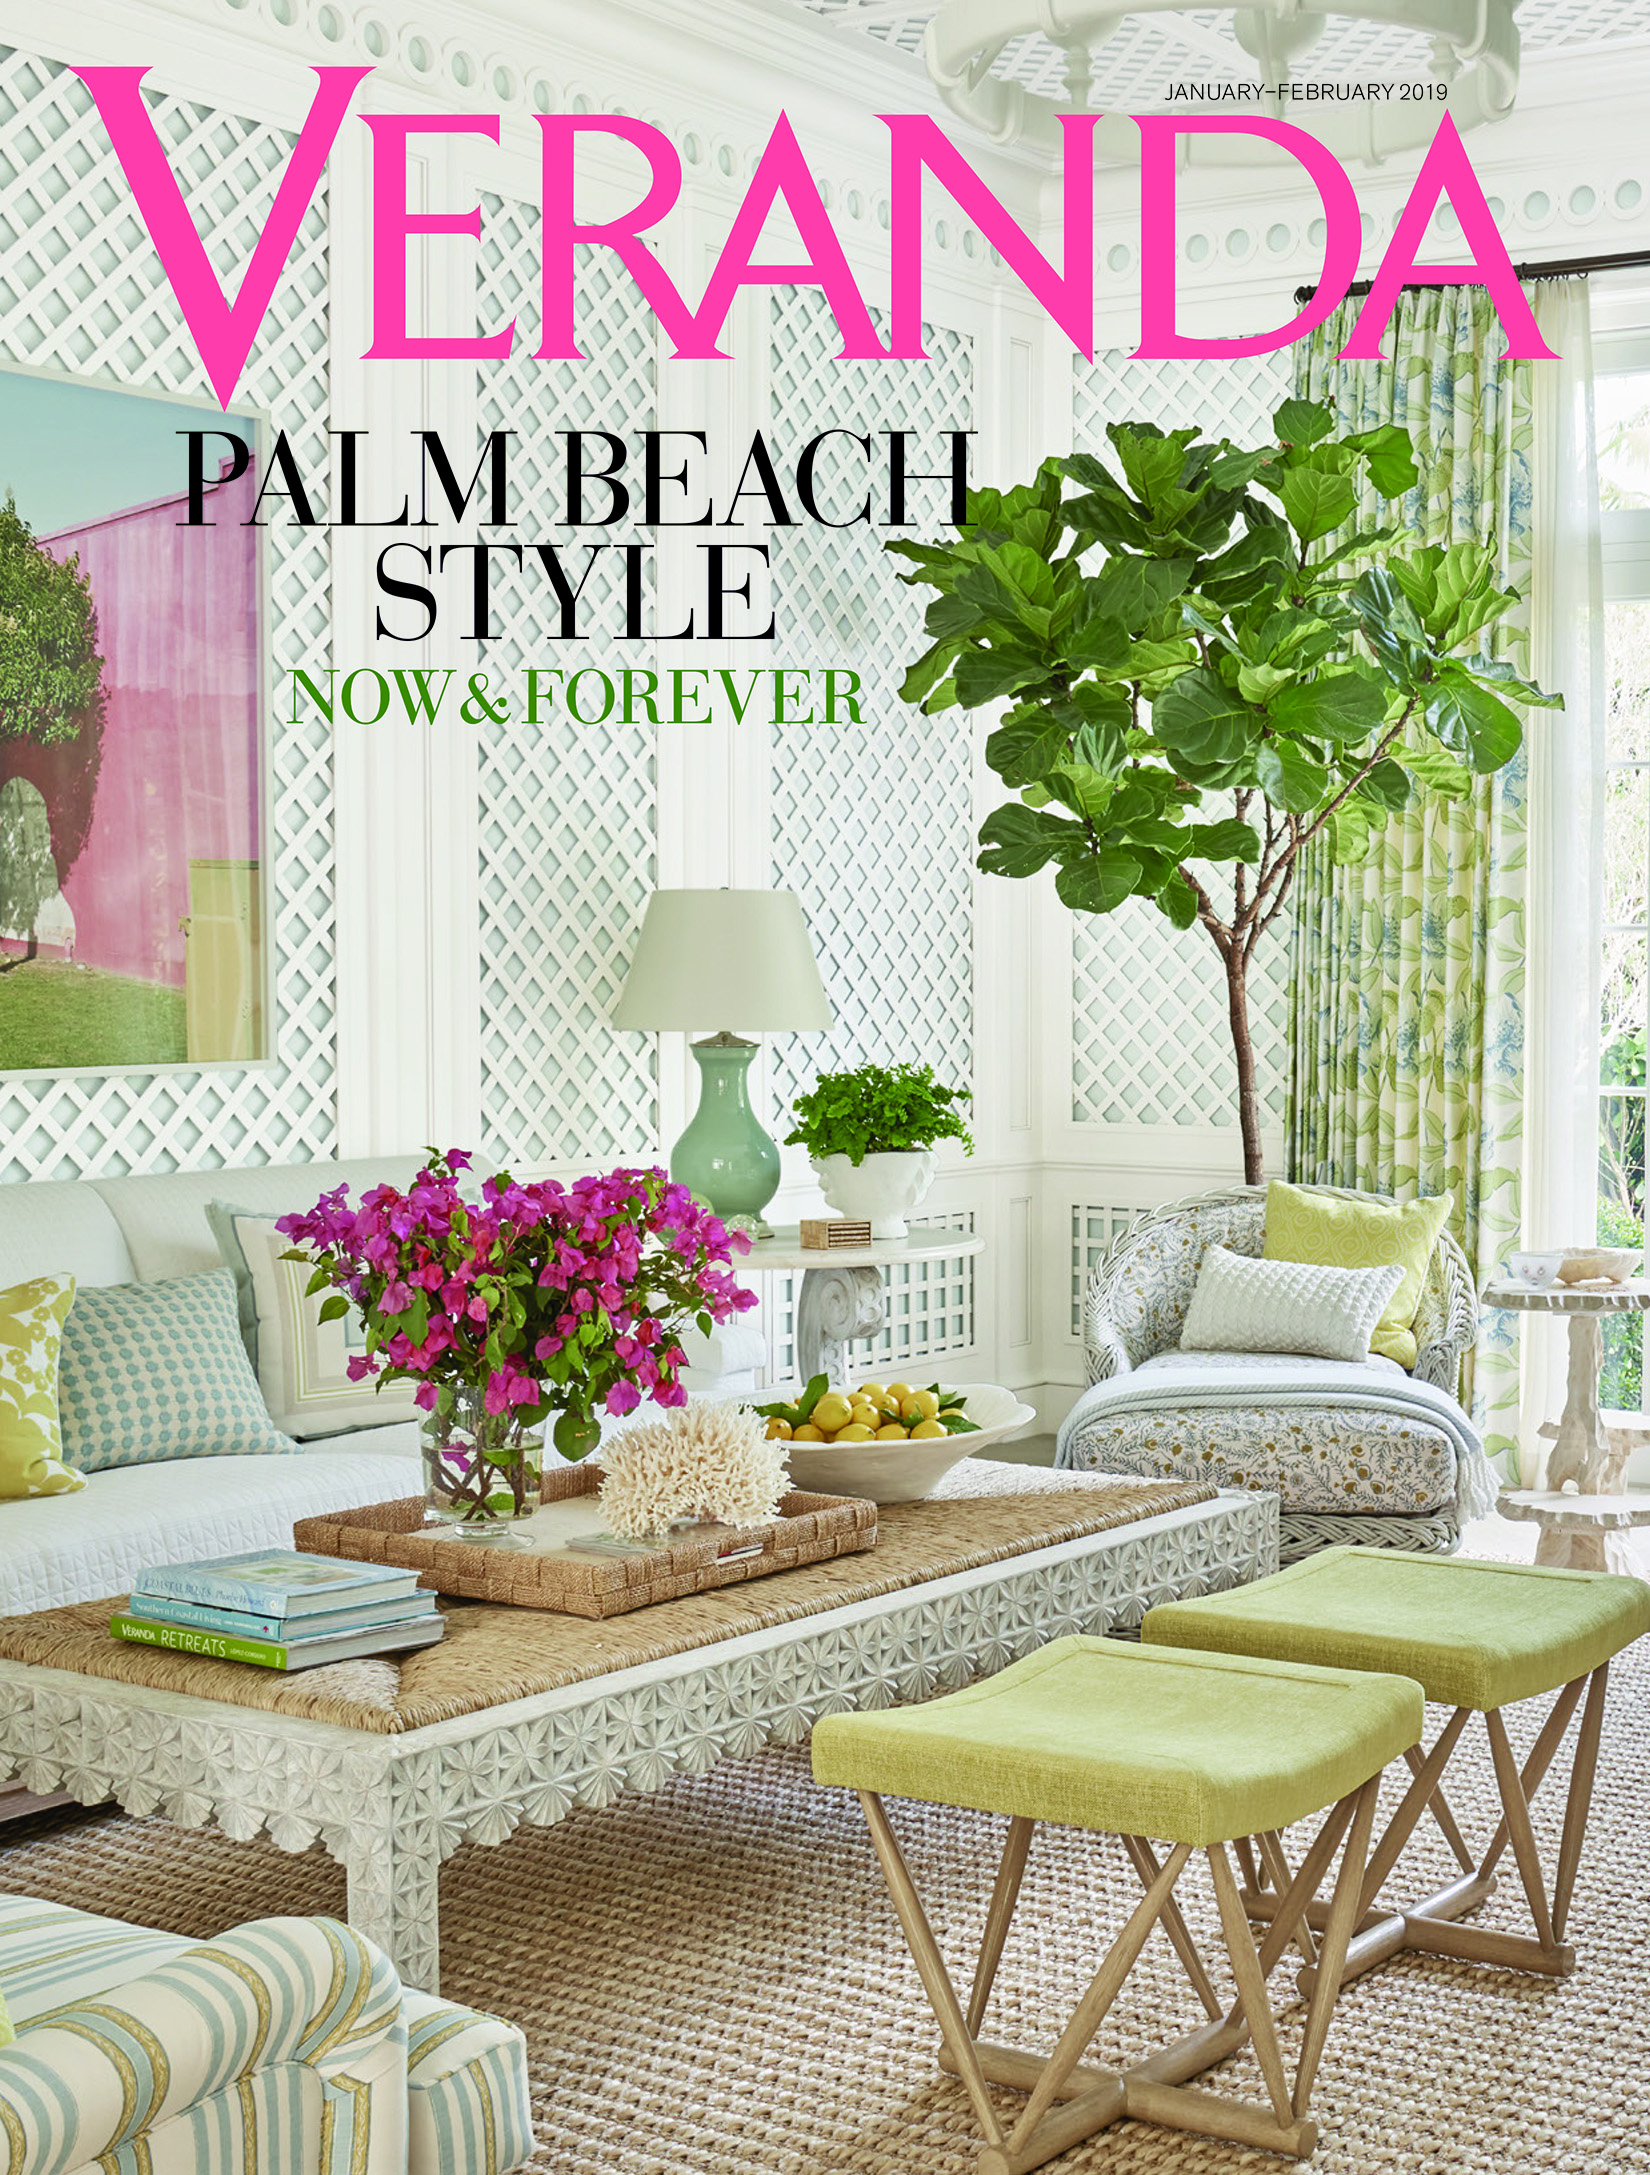 Veranda January/February 2019 Palm Beach Issue